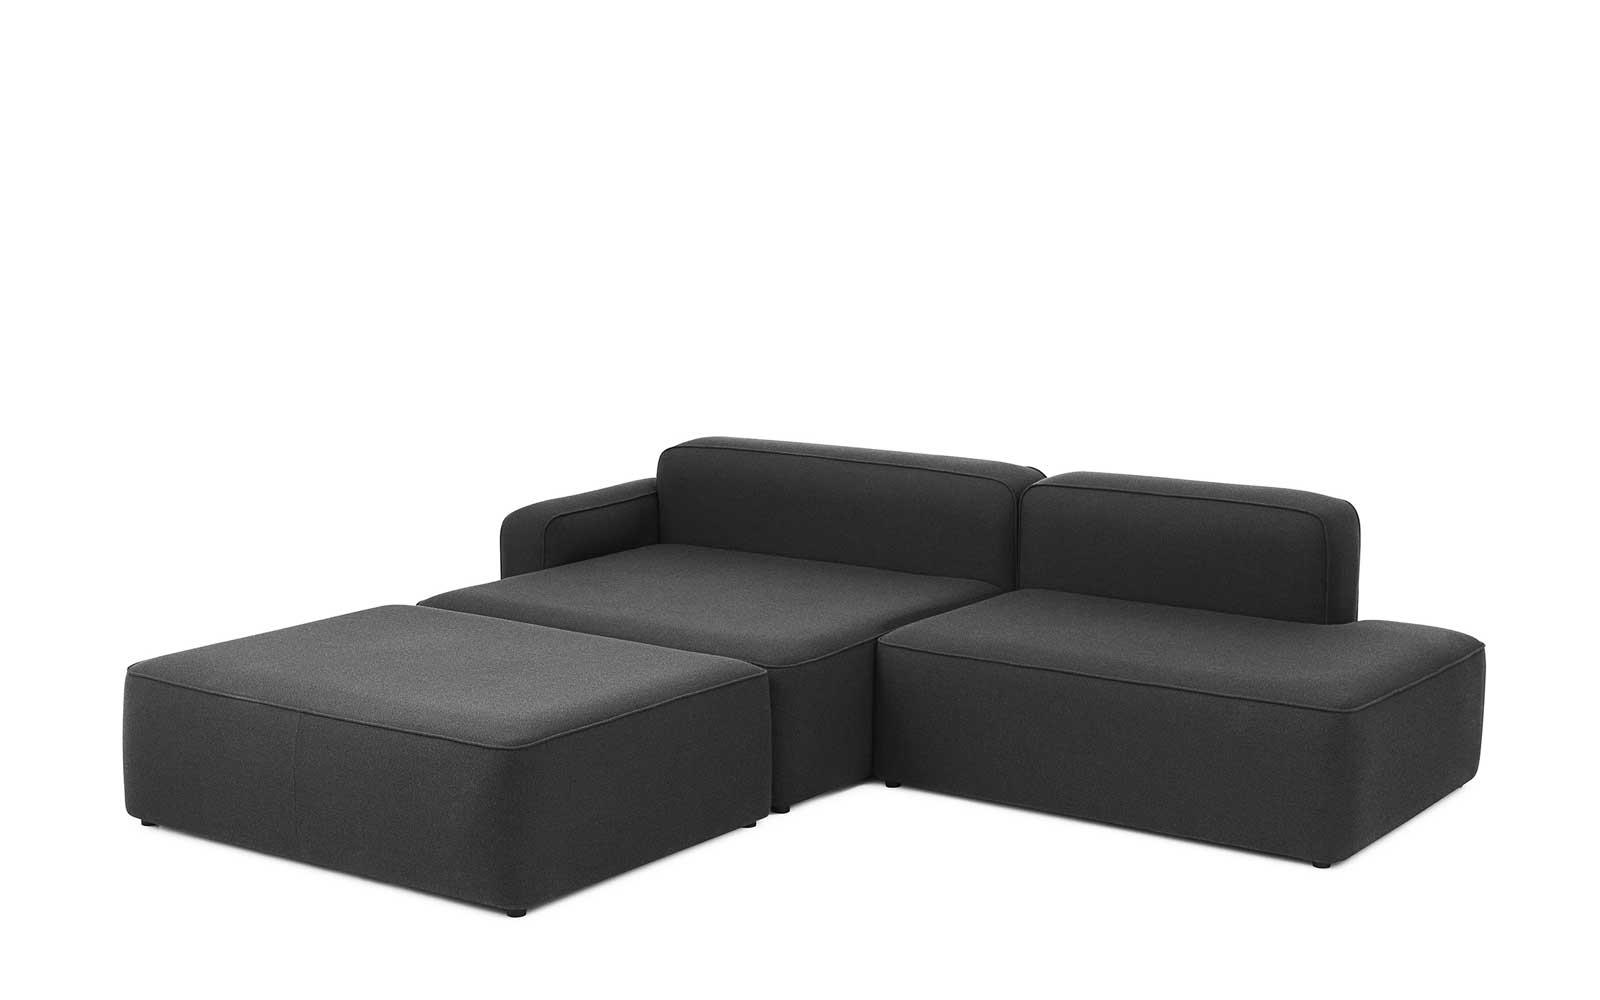 cheap leg sleep chaise in leather room lounger pillow lounge with modern bedroom from classic item living furniture sofa for lazy wood chair